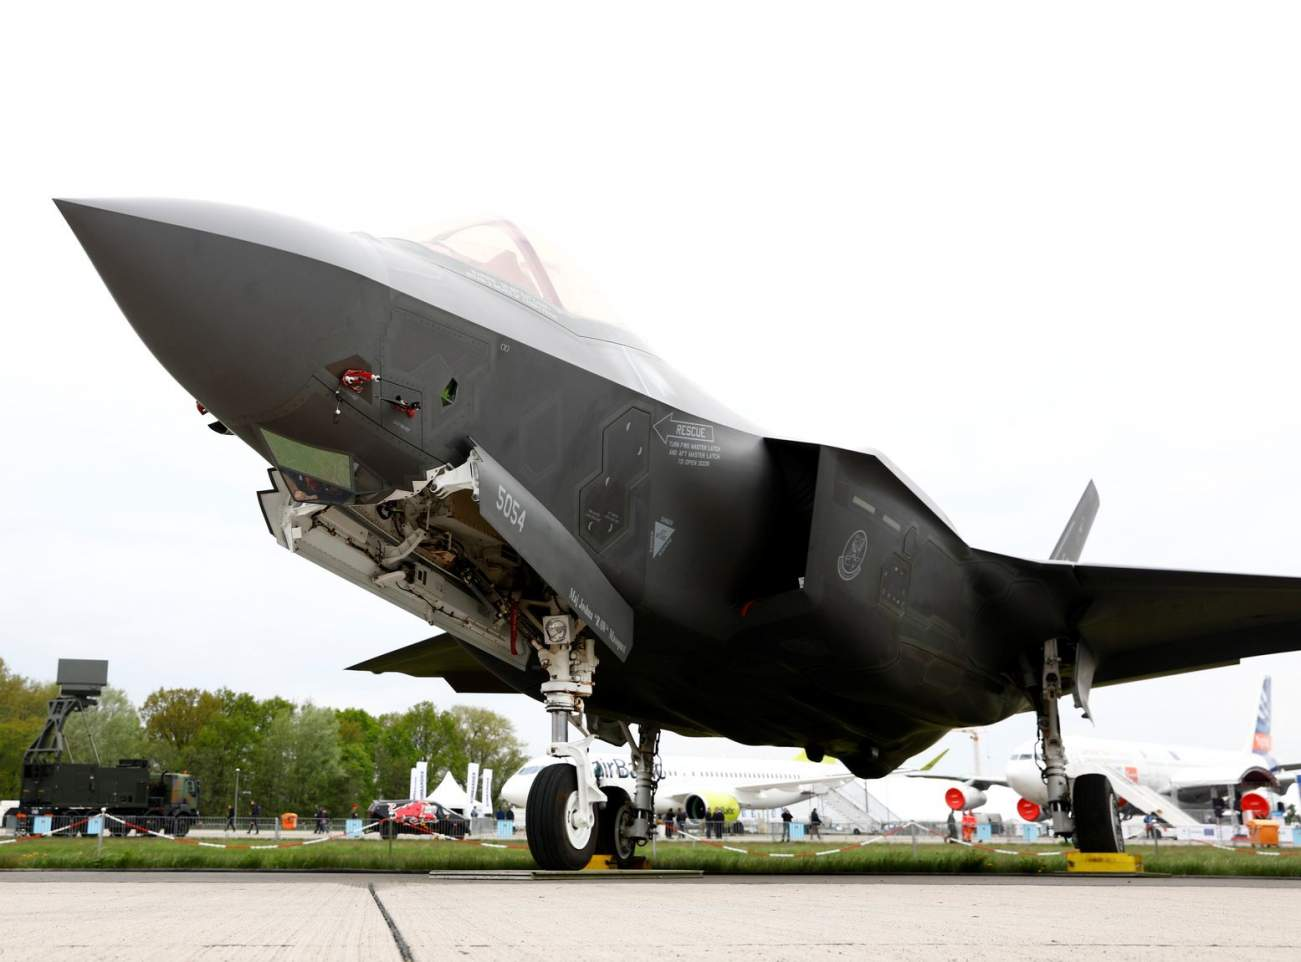 The Odds of Canada Buying a Bunch of F-35s Just Went Up